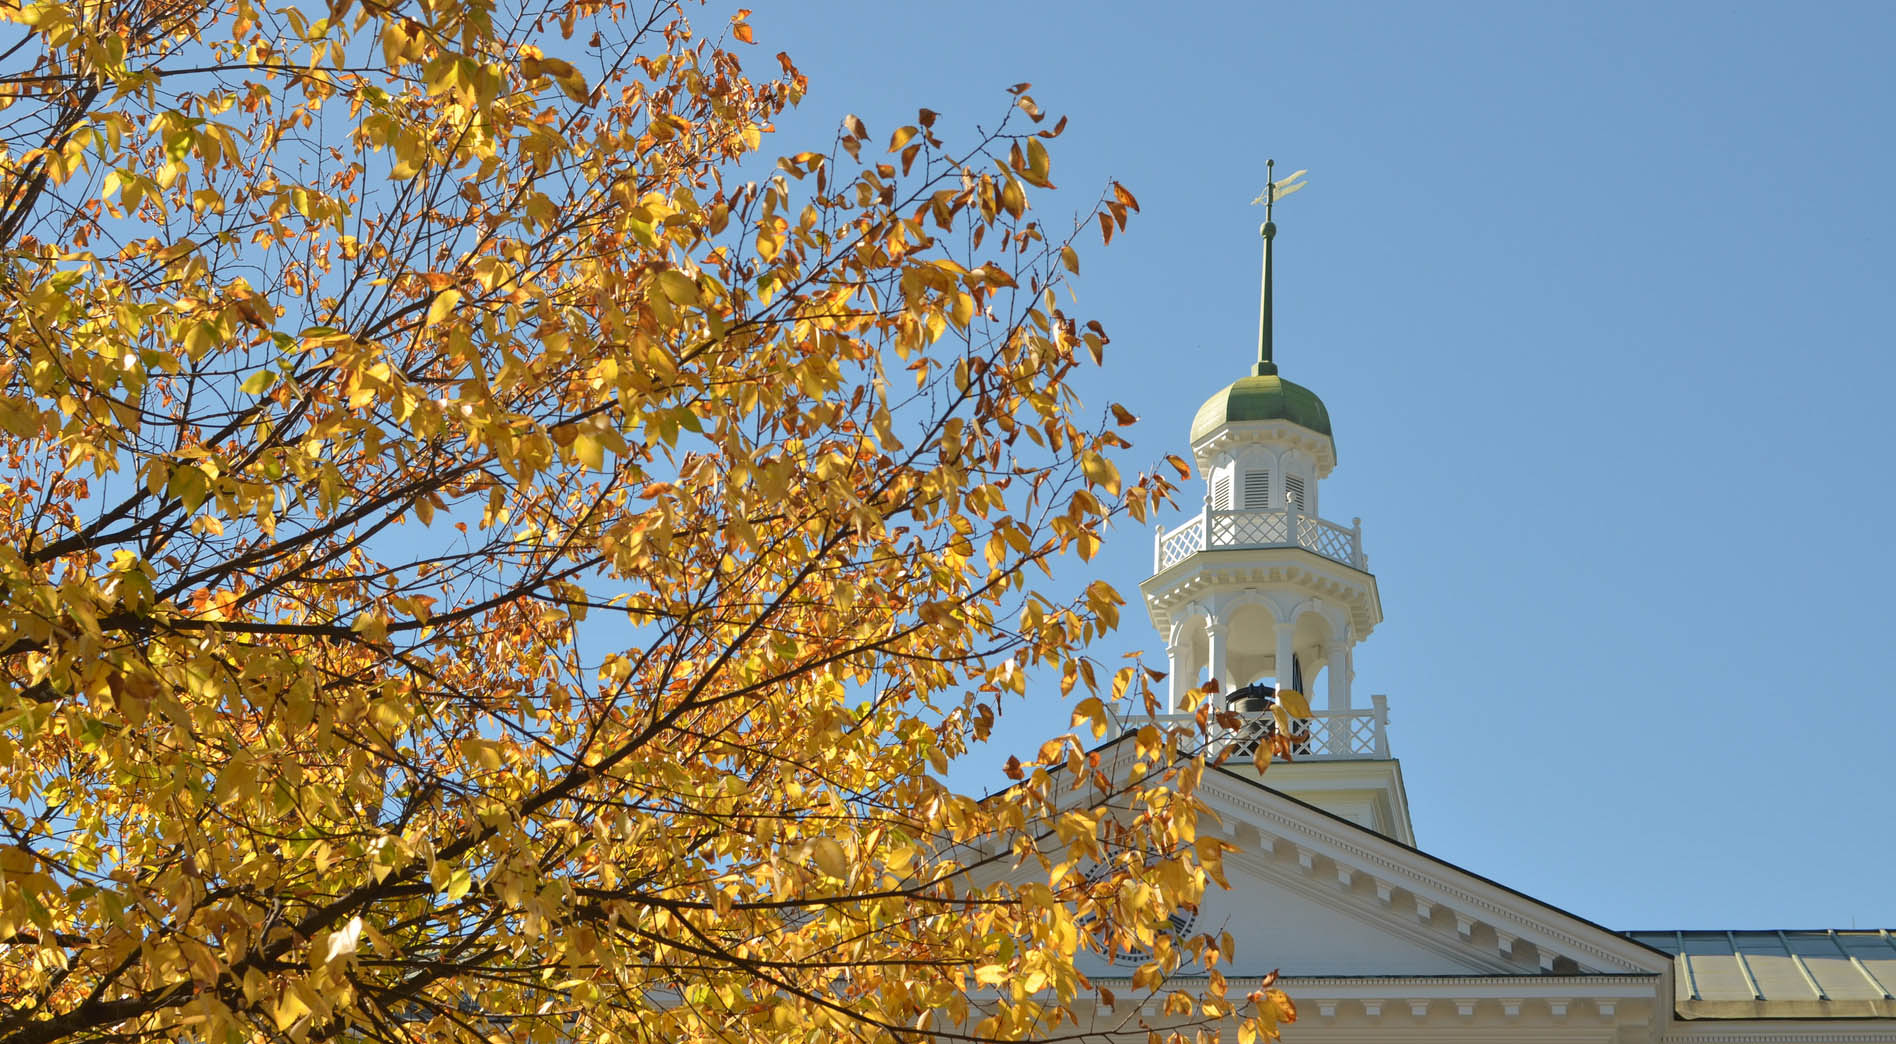 top of Dartmouth Hall in Fall foliage